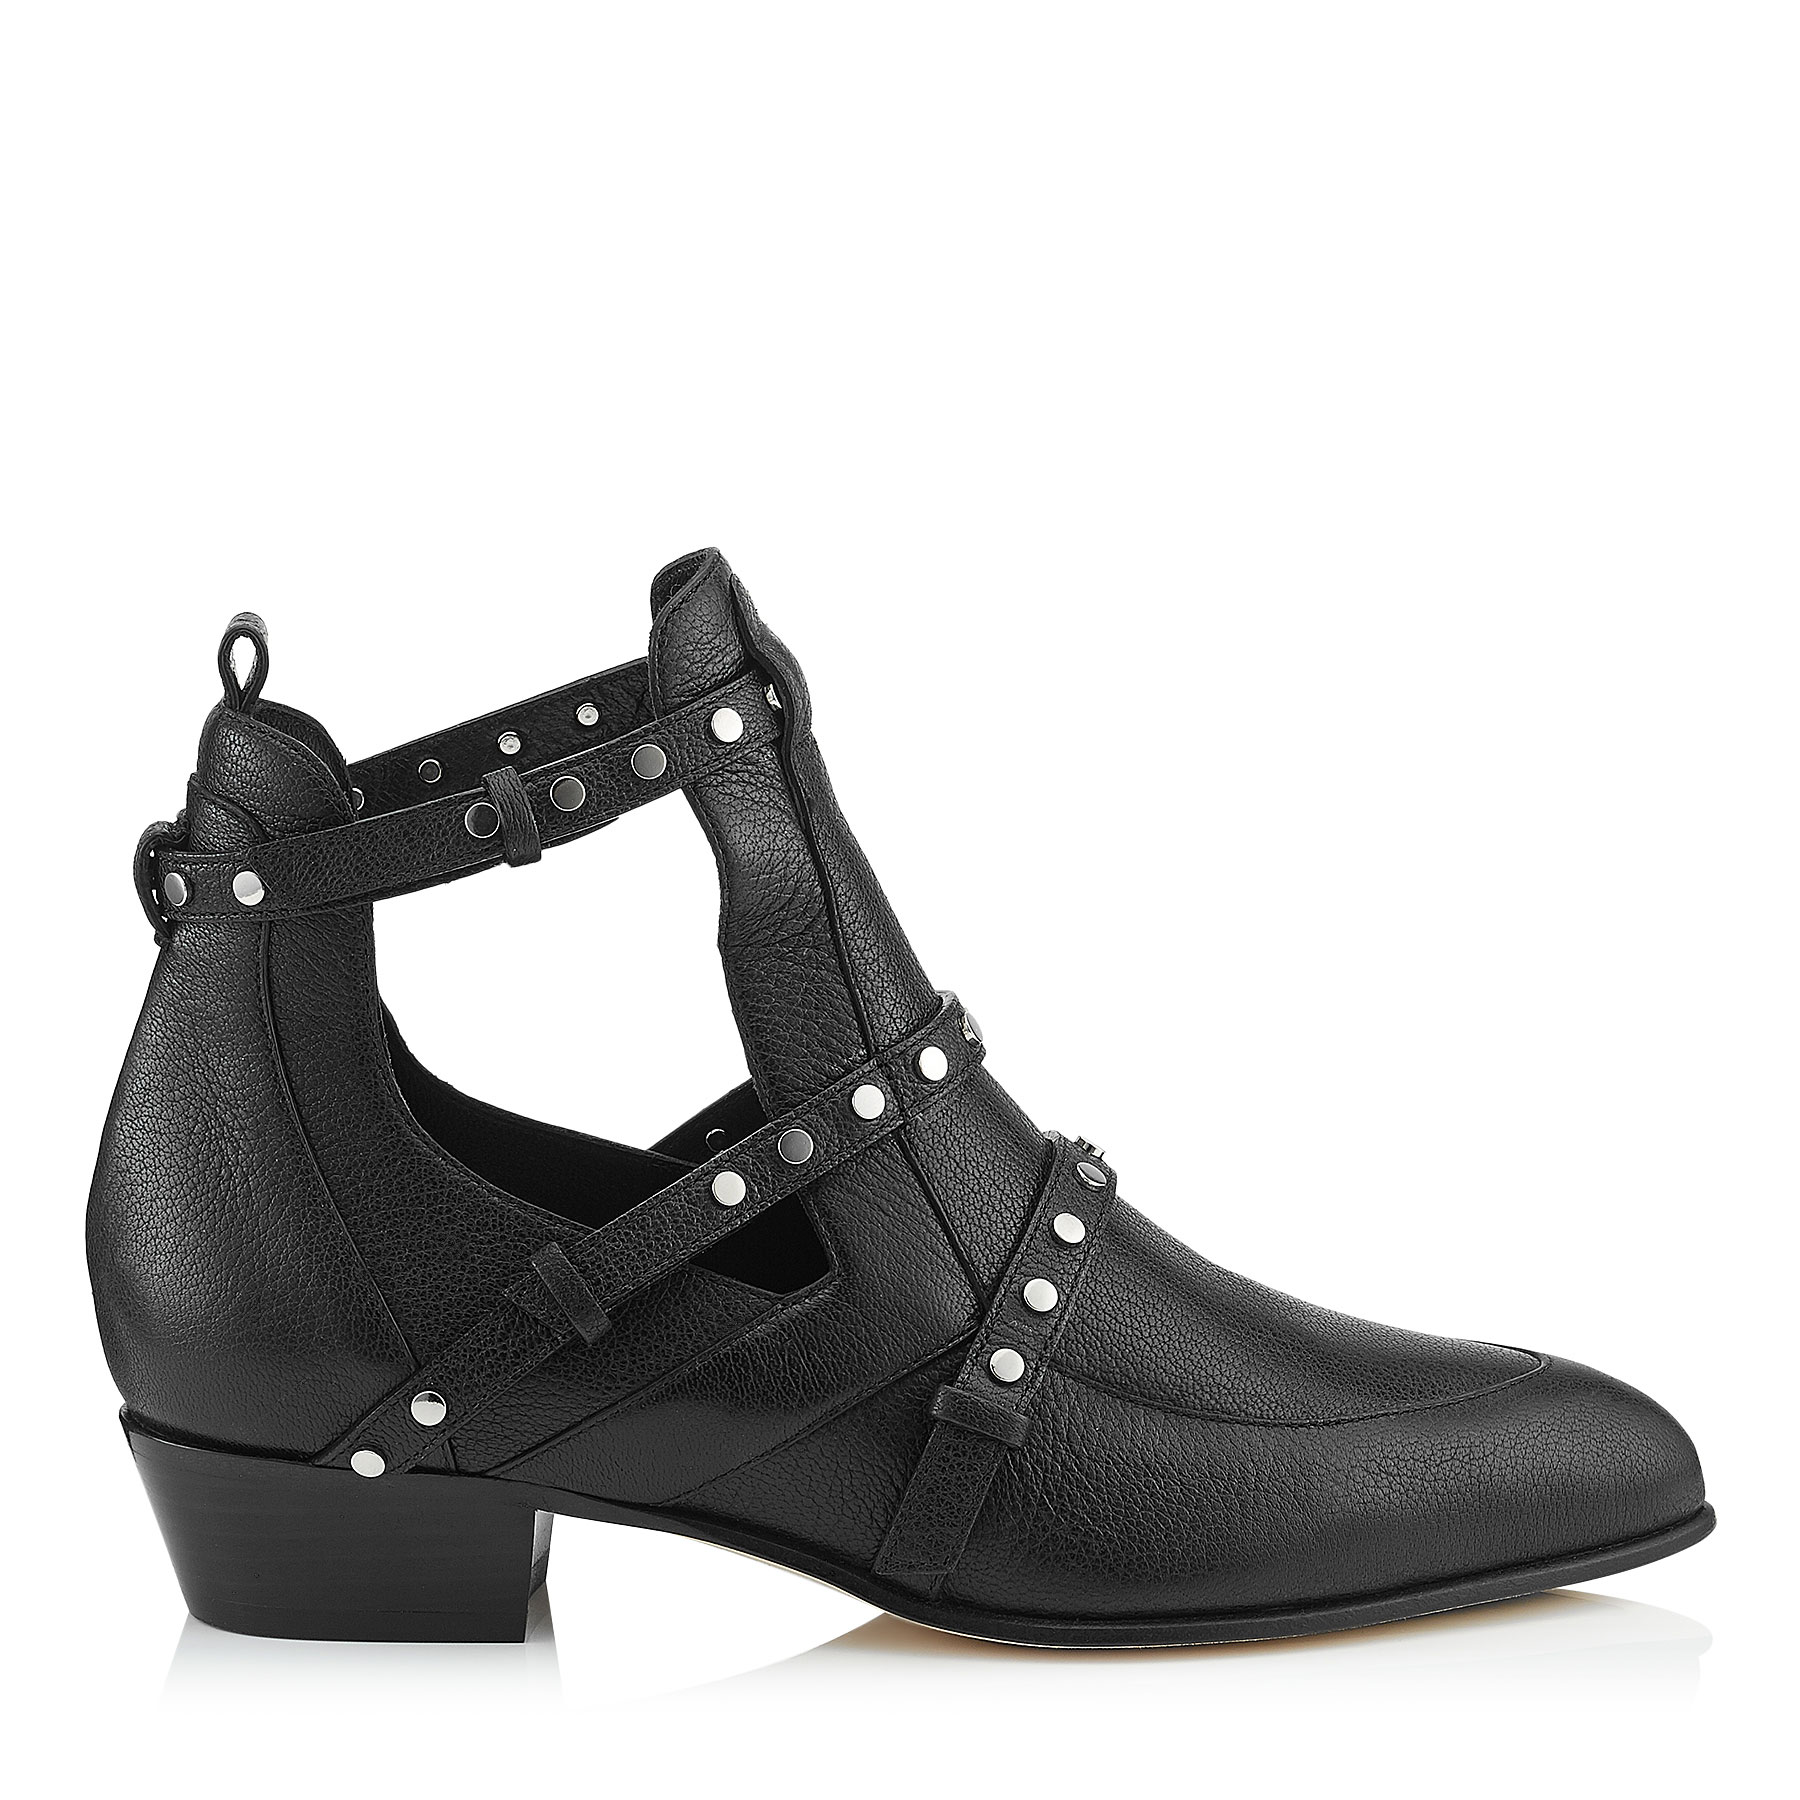 HARLEY 30 Black Textured Leather Cut Out Booties